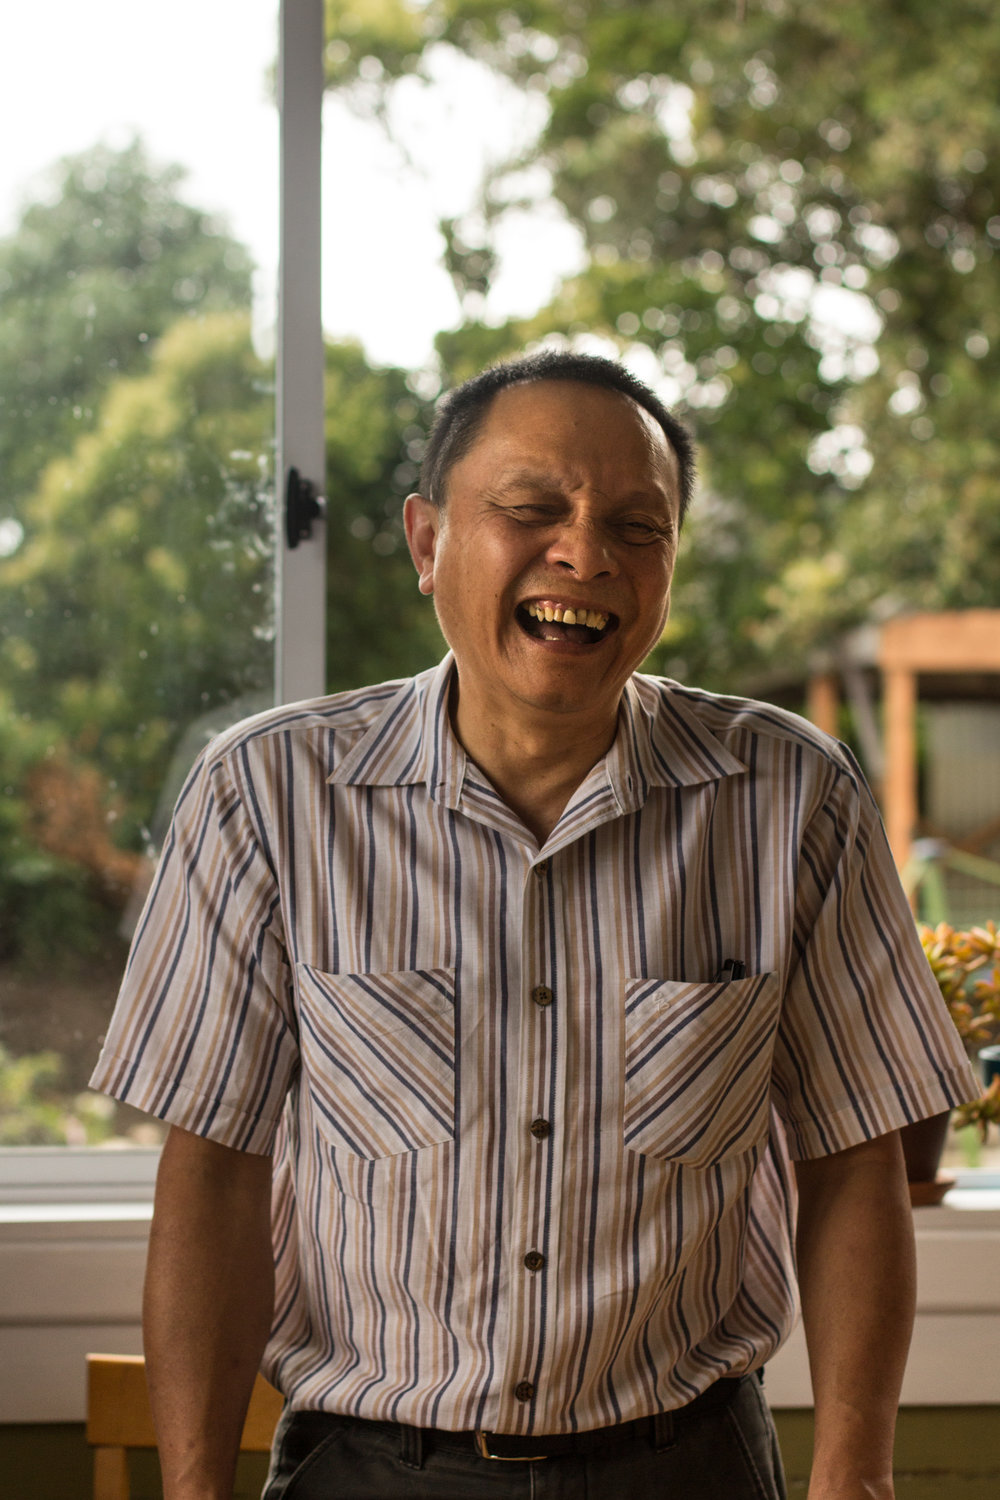 Han Huang, an immigrant from Malaysia, features in the doco